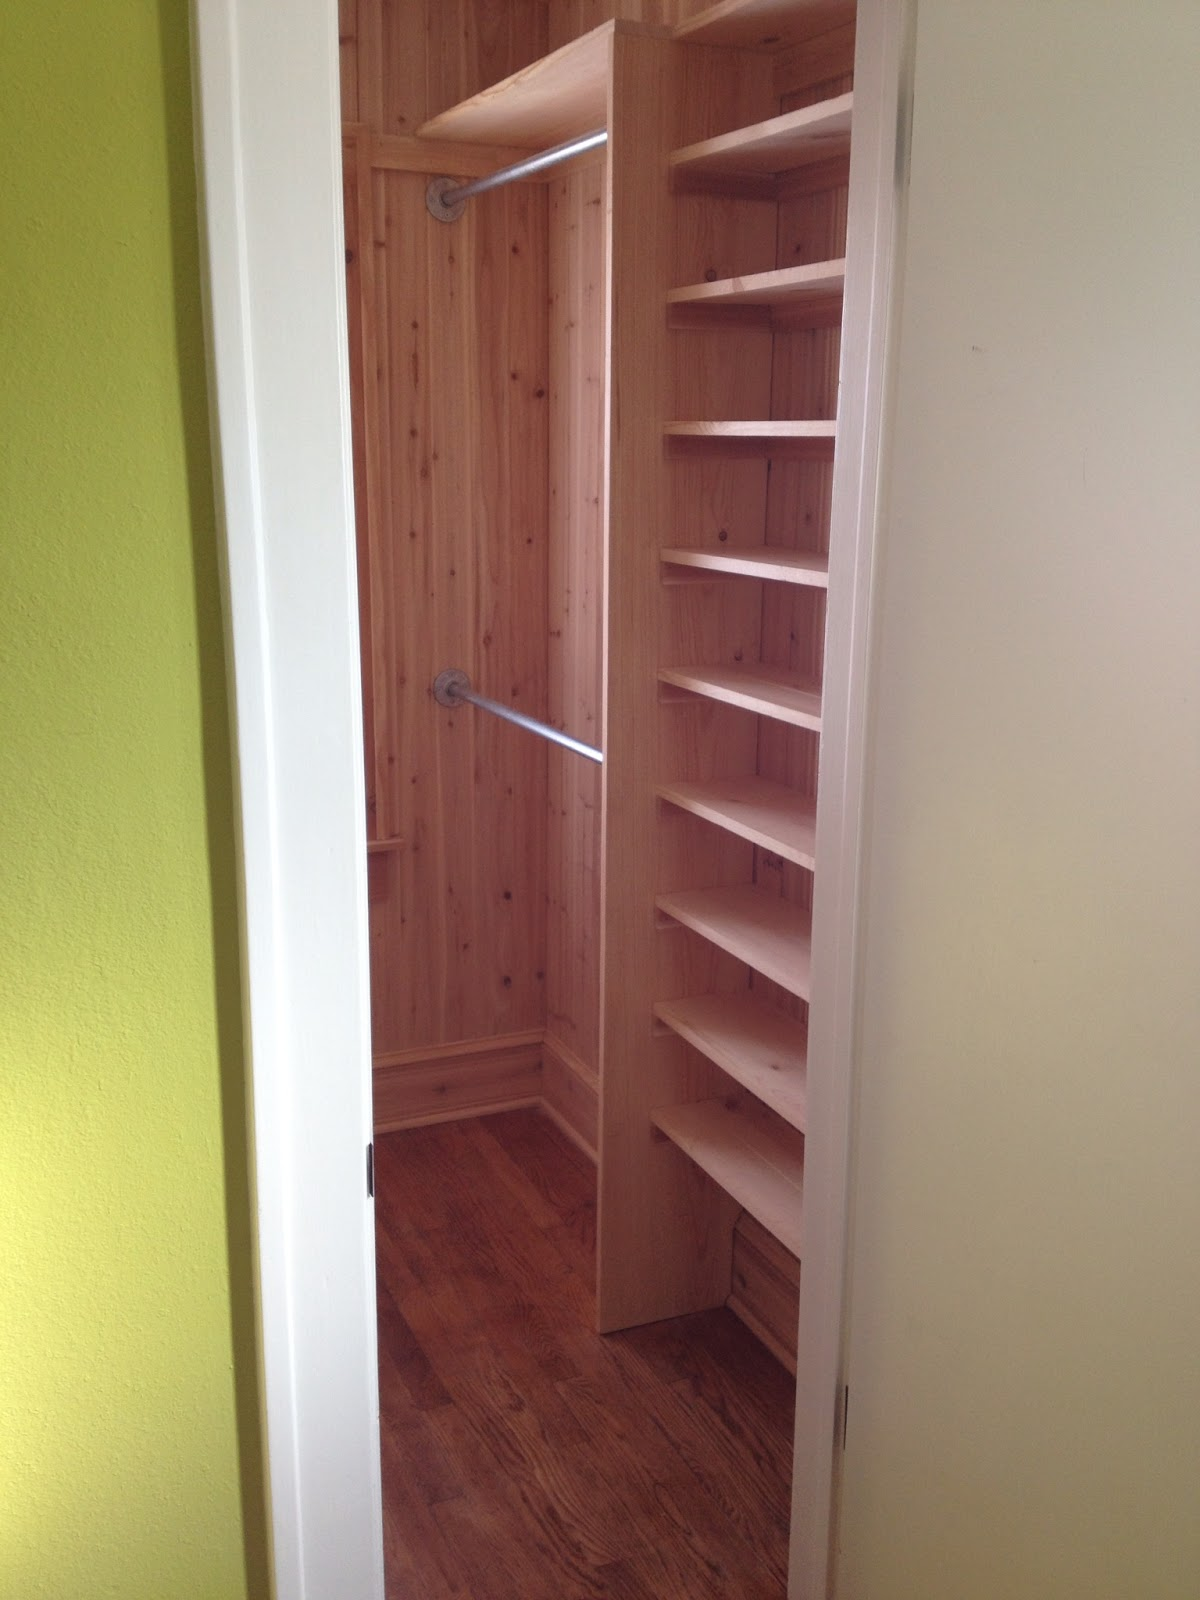 A new walk in cedar closet before and after brookside for Adding a walk in closet